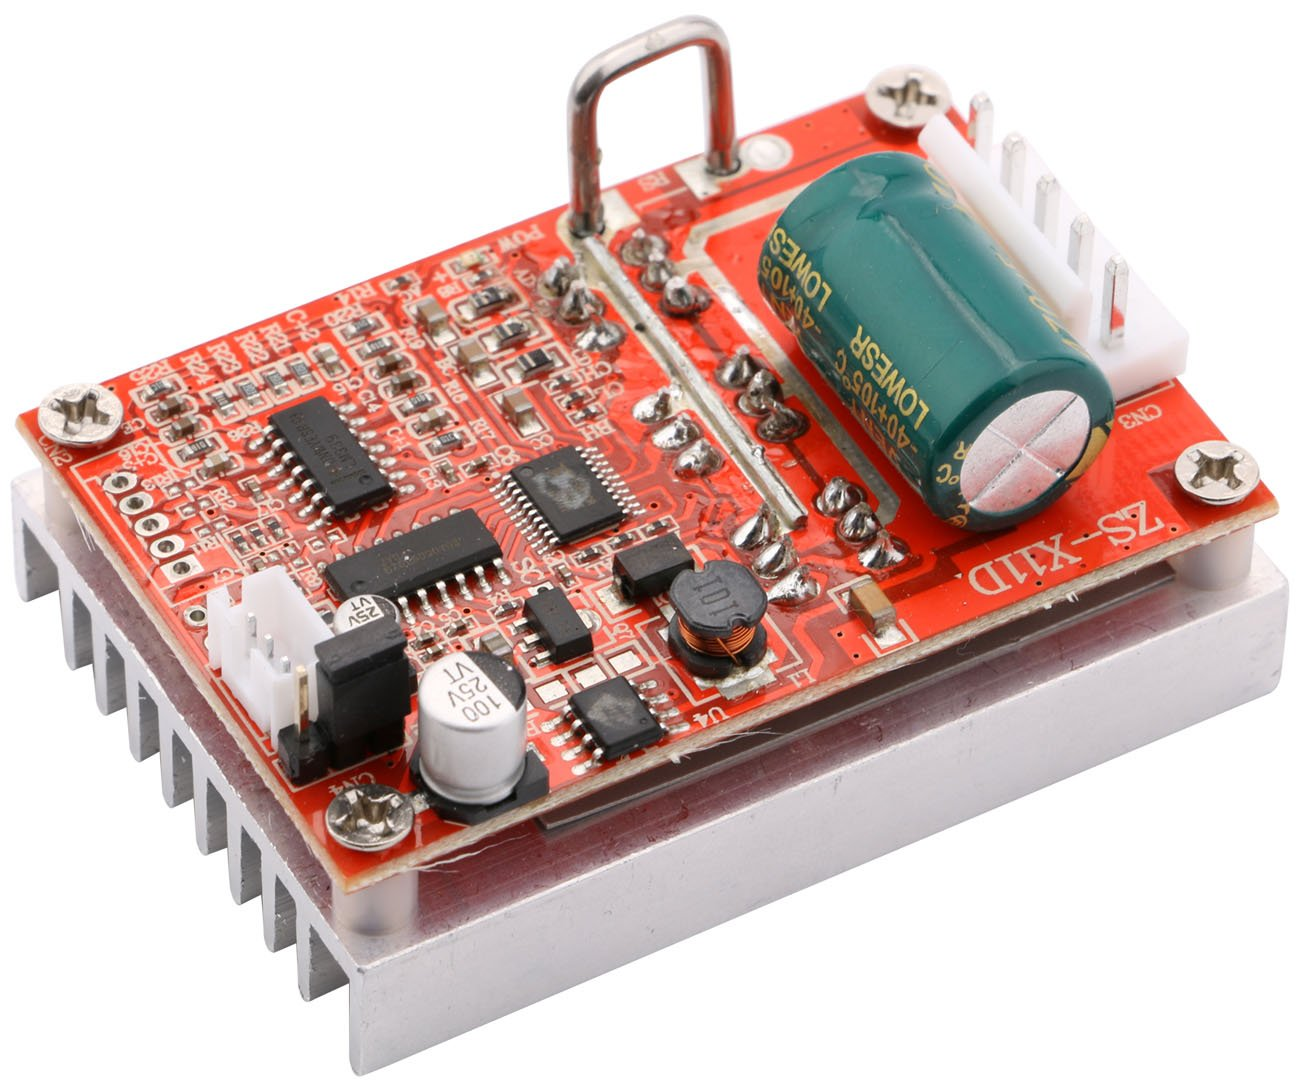 Yeeco DC 5-50V 380W High Power Motor Controller Driver Board, Brushless DC Motor Speed Regulator Control with Reversible Switch Forward/Reverse by Yeeco